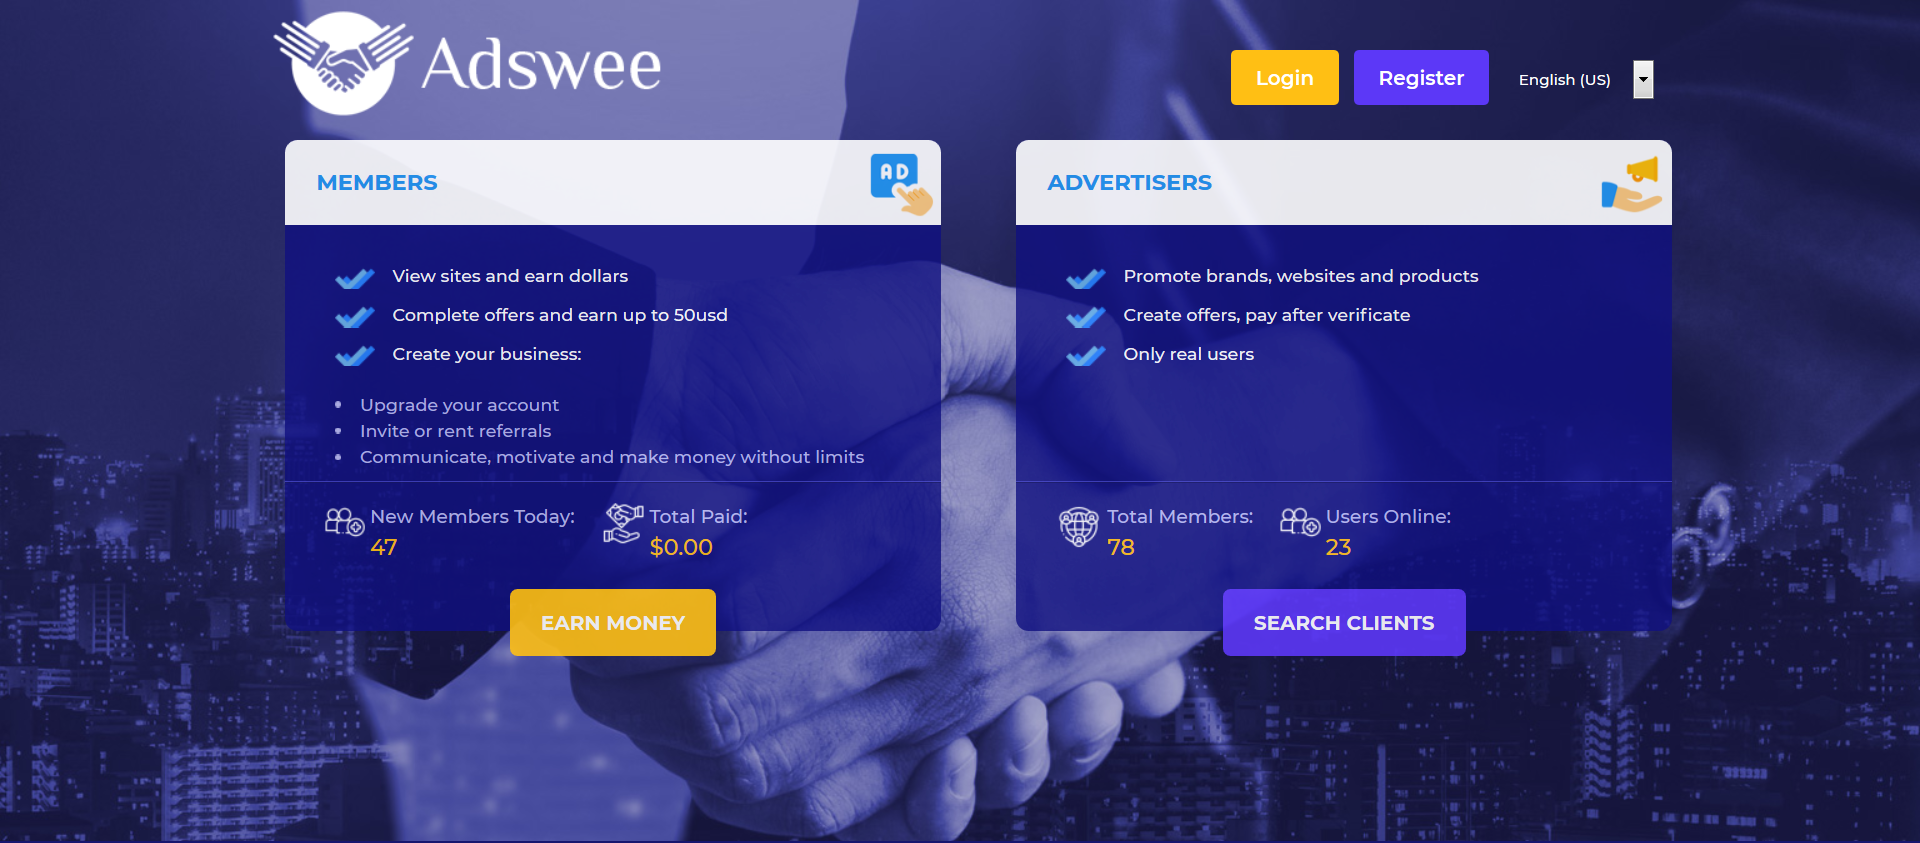 adswee.com Reviews - SCAM or PAYING?